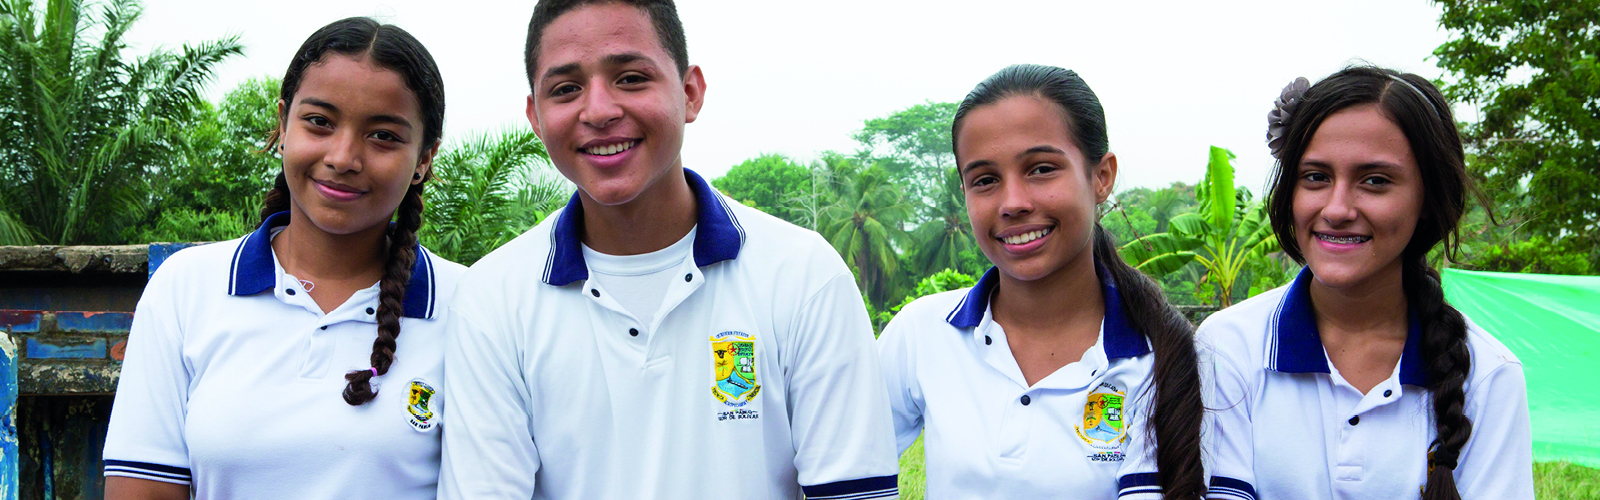 Help build peace with CAFOD's Hands On Colombia programme